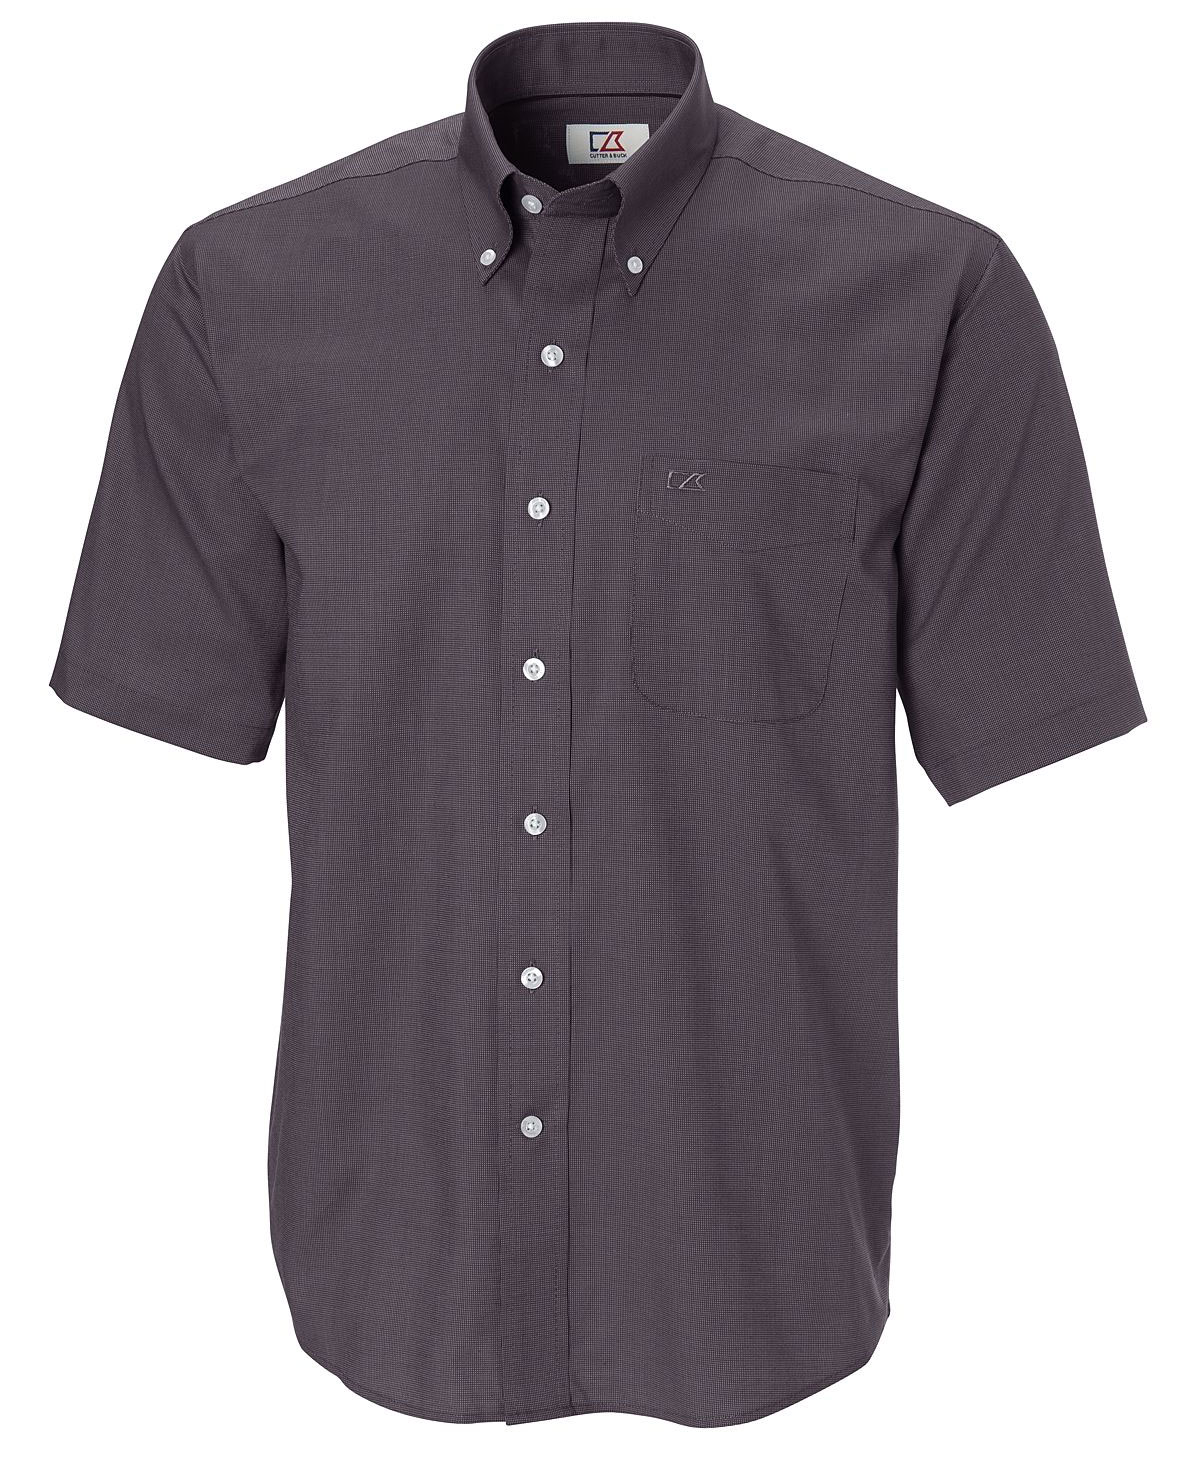 Cutter & Buck Mens Epic Easy Care Short Sleeve Nailshead Shirt